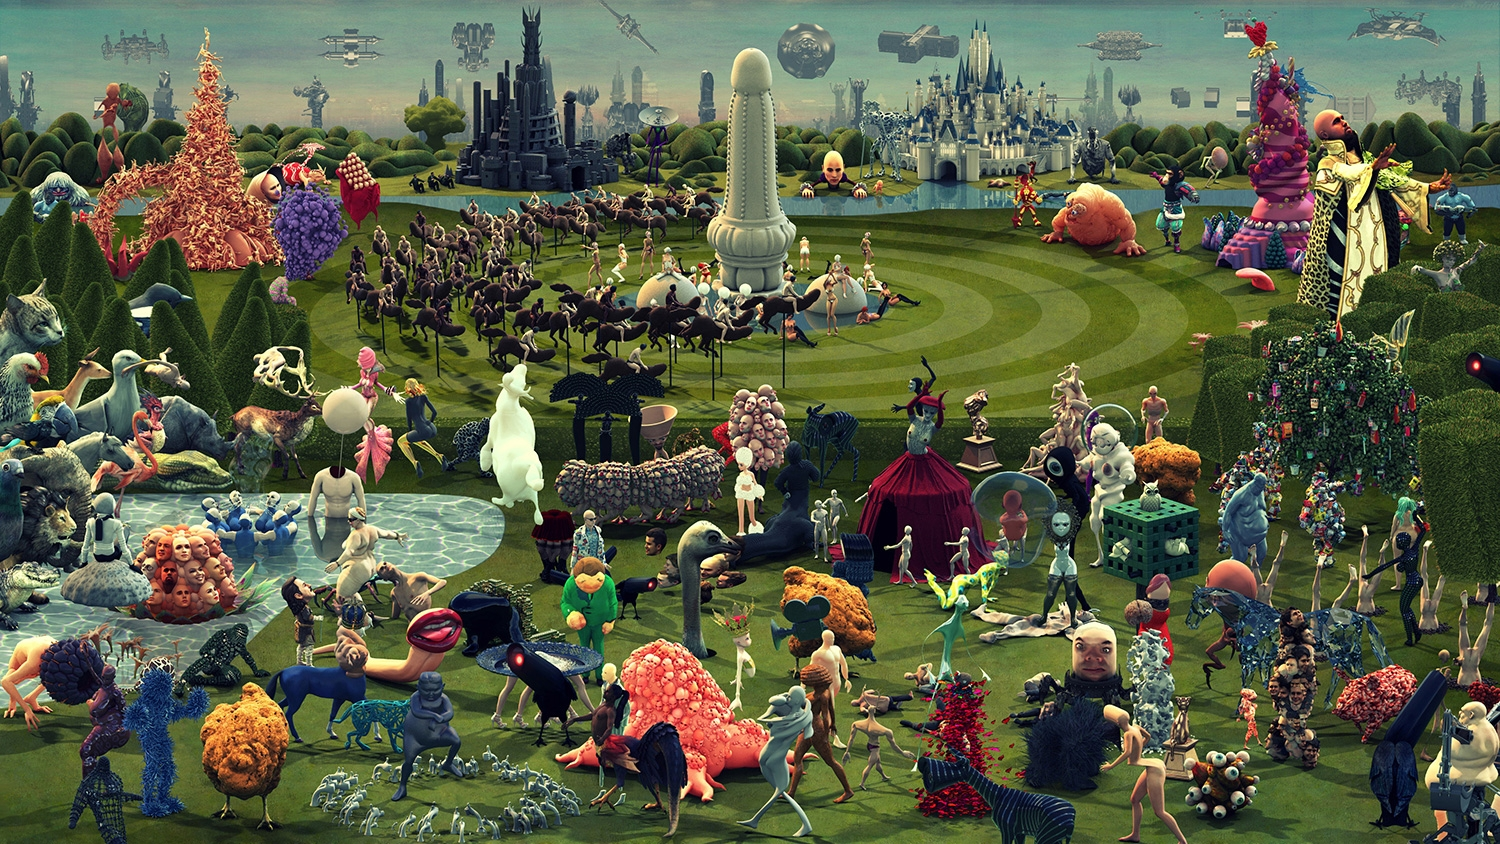 Hieronymus Bosch Giardino Delle Delizie This Animated Version Of Hieronymus Bosch 39s Painting